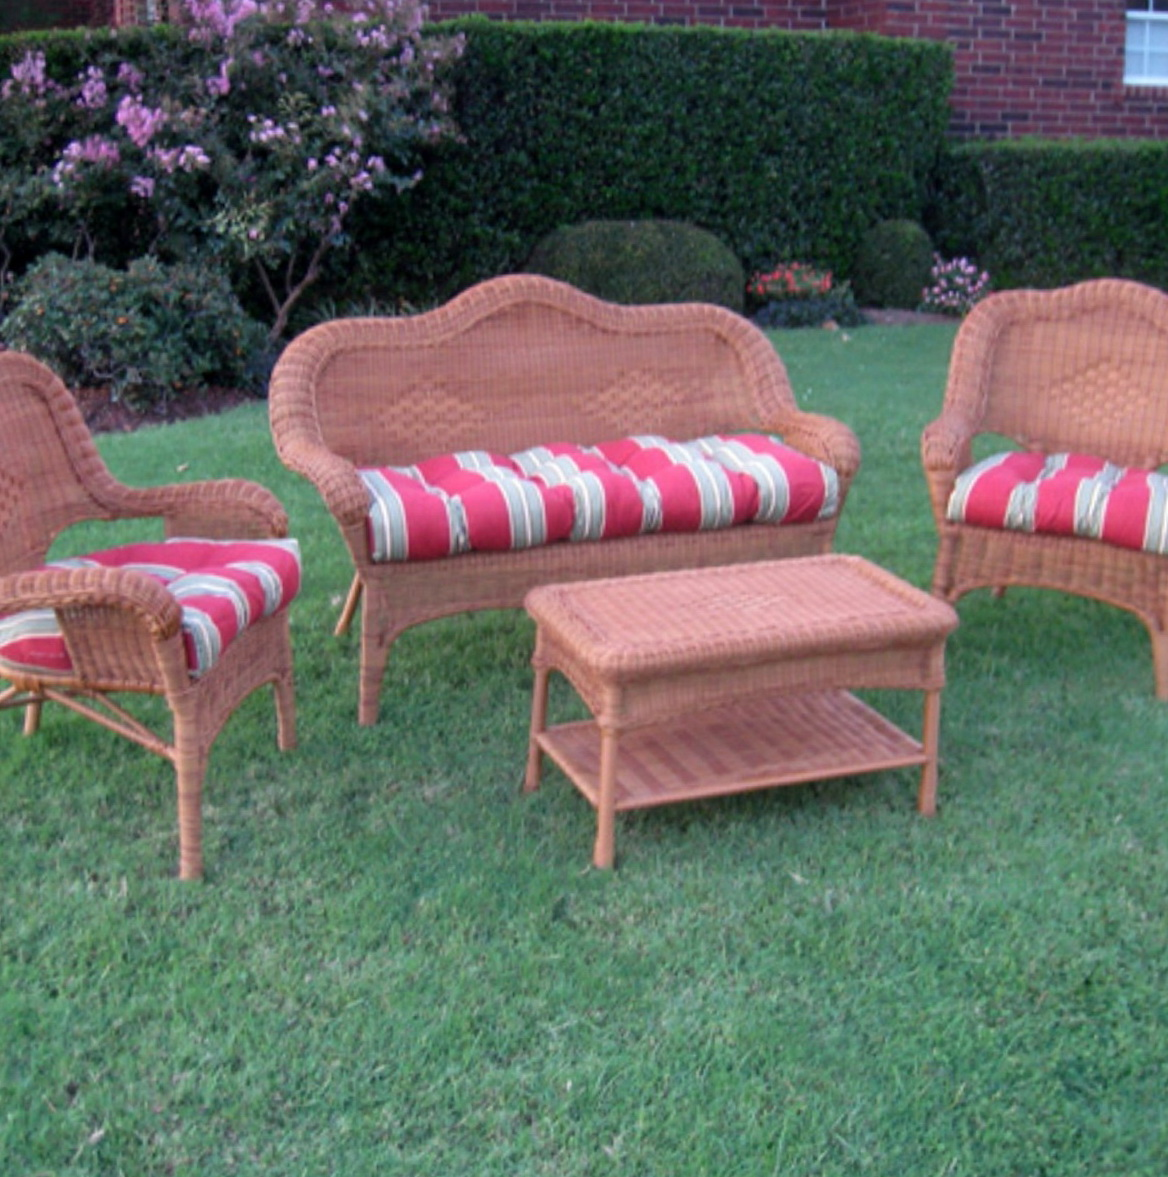 Outdoor bench recover patio furniture cushions furniture how much doe bench seat Cheap outdoor bench cushions